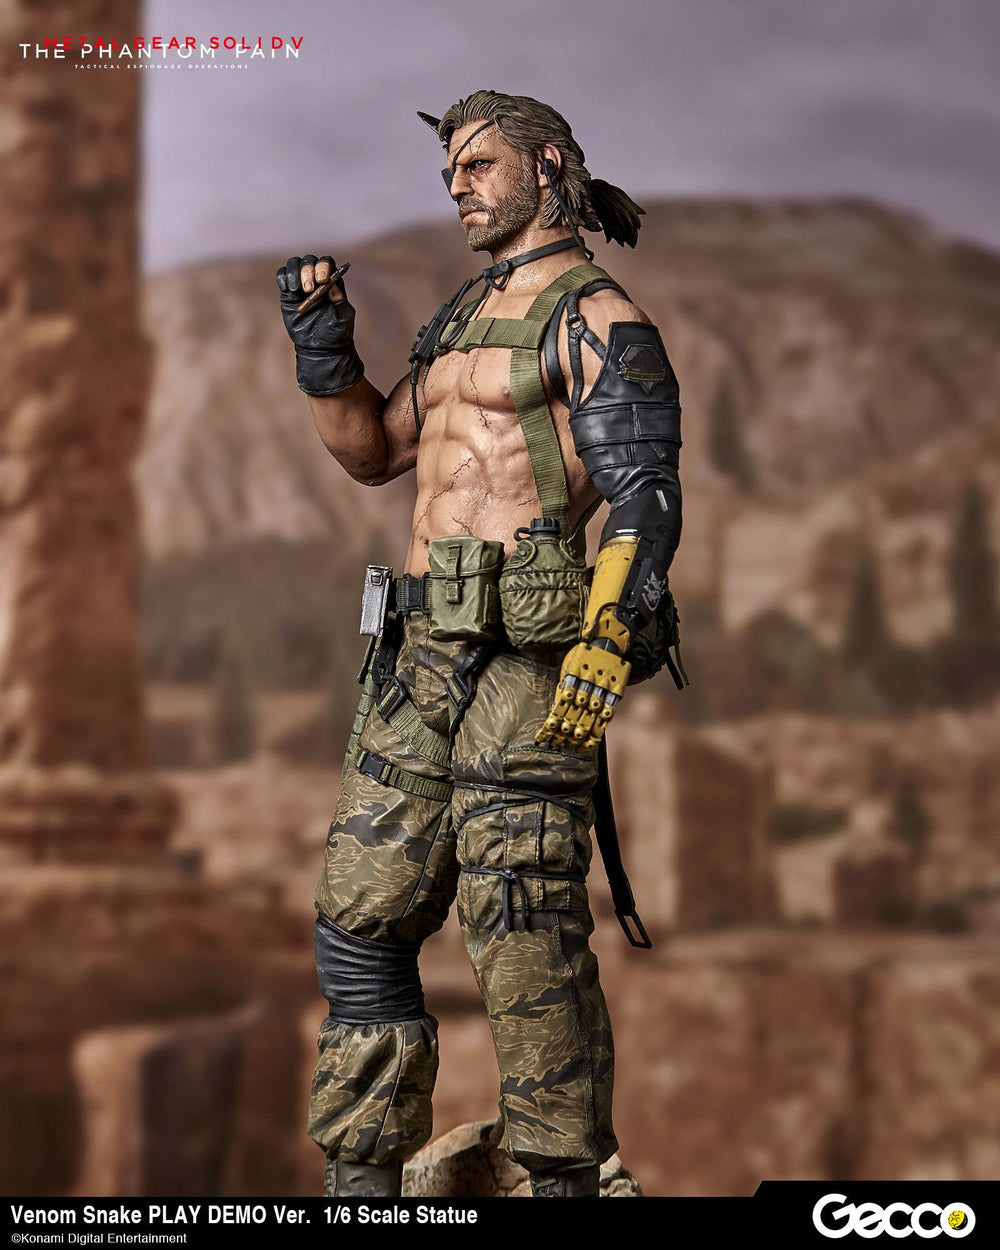 Gecco Metal Gear Solid V: The Phantom Pain Venom Snake Play Demo Version 1/6 Statue